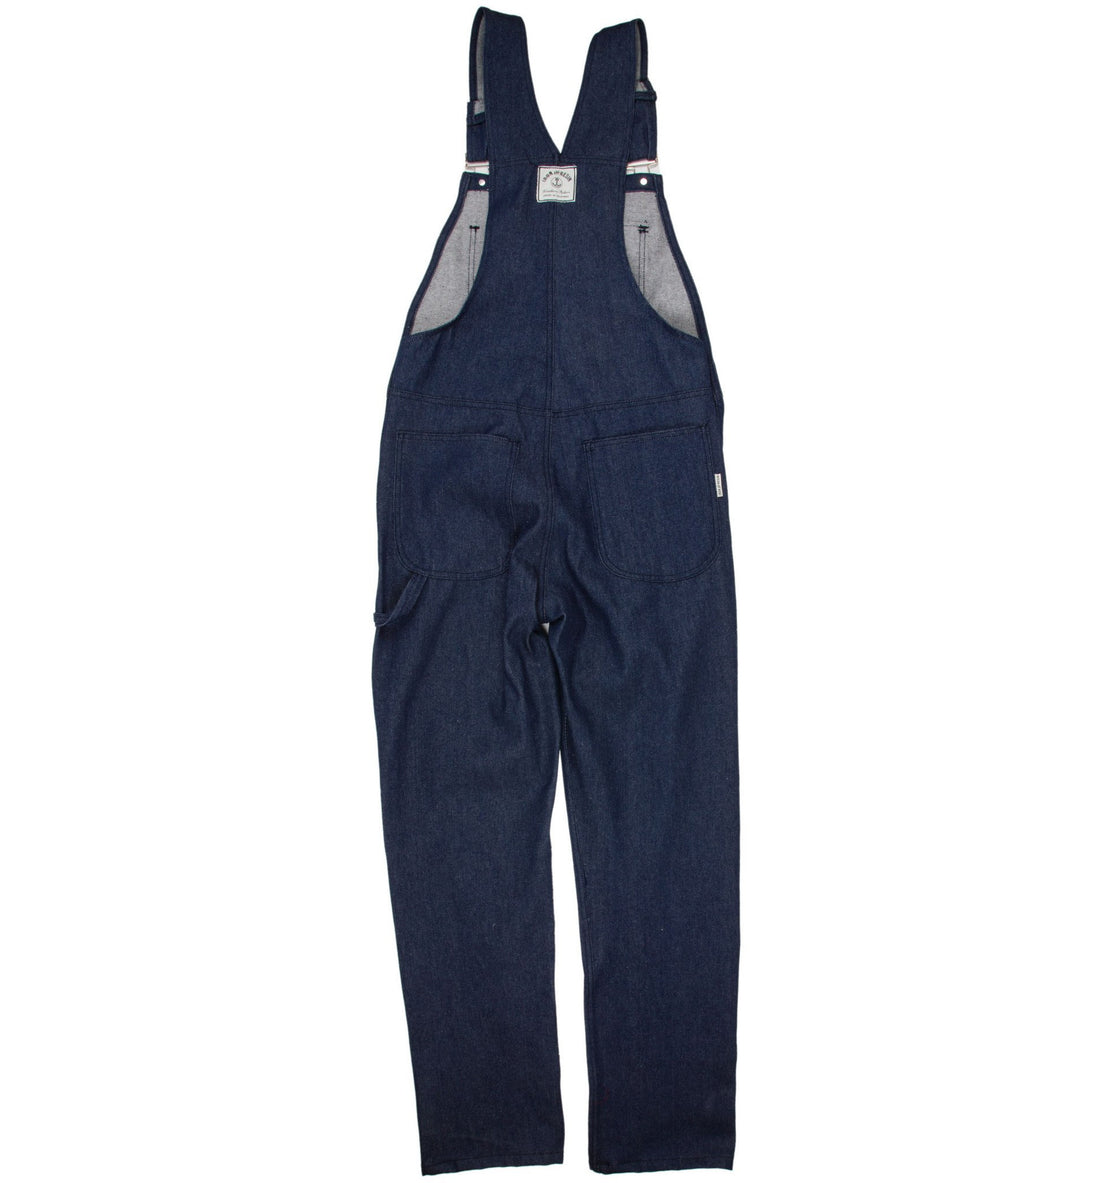 INR Tatham Overalls - Apparel: Men's: Pants - Iron and Resin